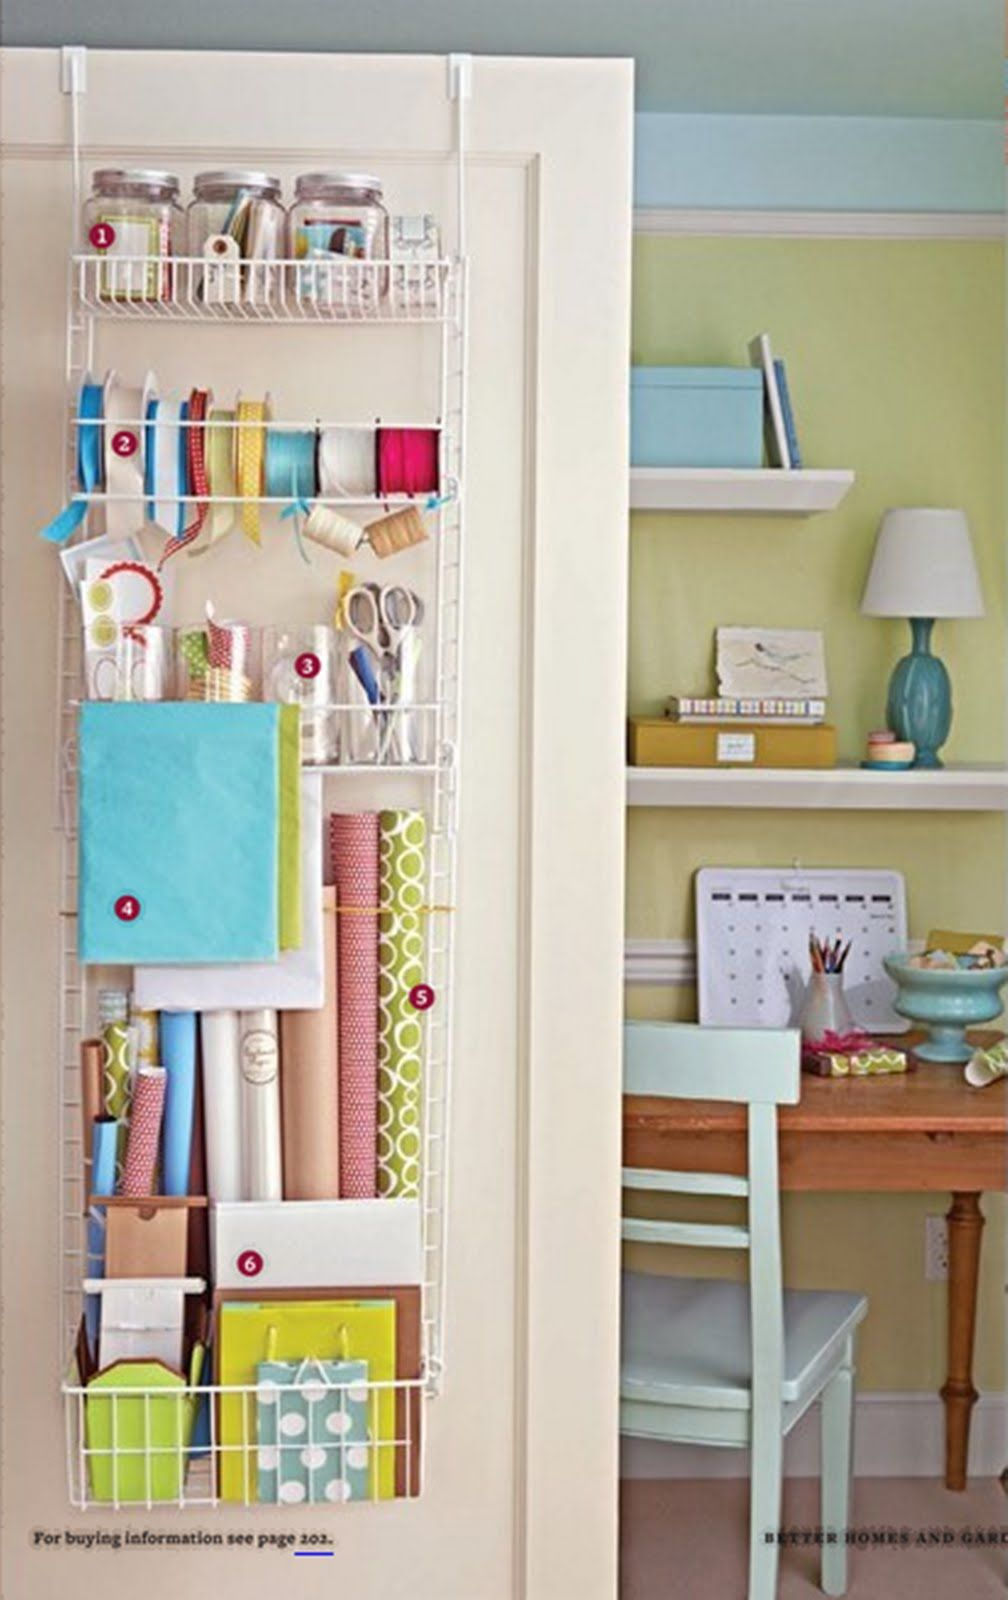 Over-the-Door Storage for Gift Wrapping Supplies-awesome idea! I have wrapping paper just thrown in a closet! & Gift wrapping organised http://1.bp.blogspot.com/-857qha5d4xI/Ta ...